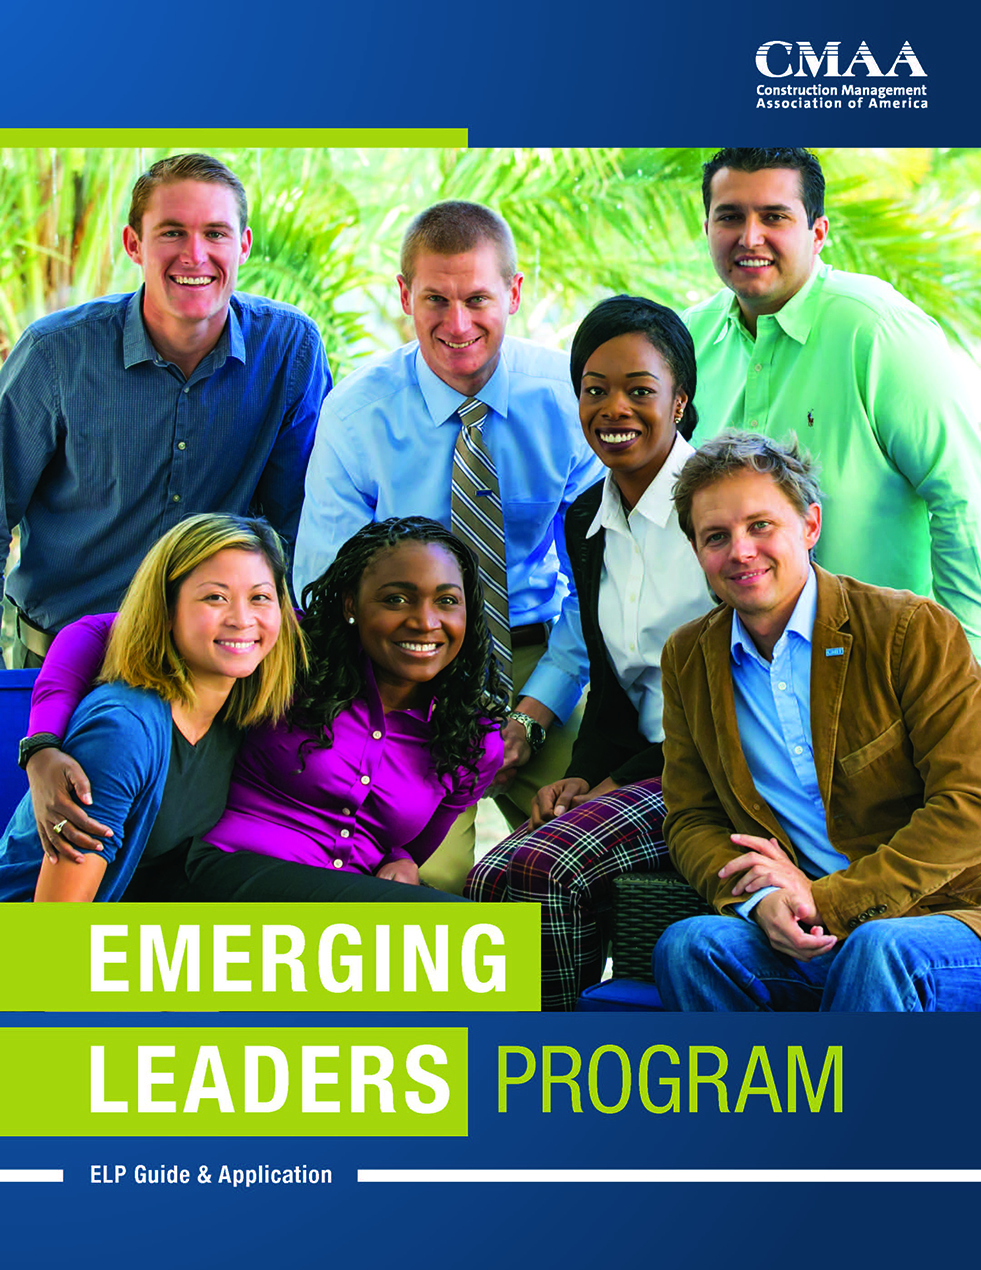 Emerging Leaders Program image